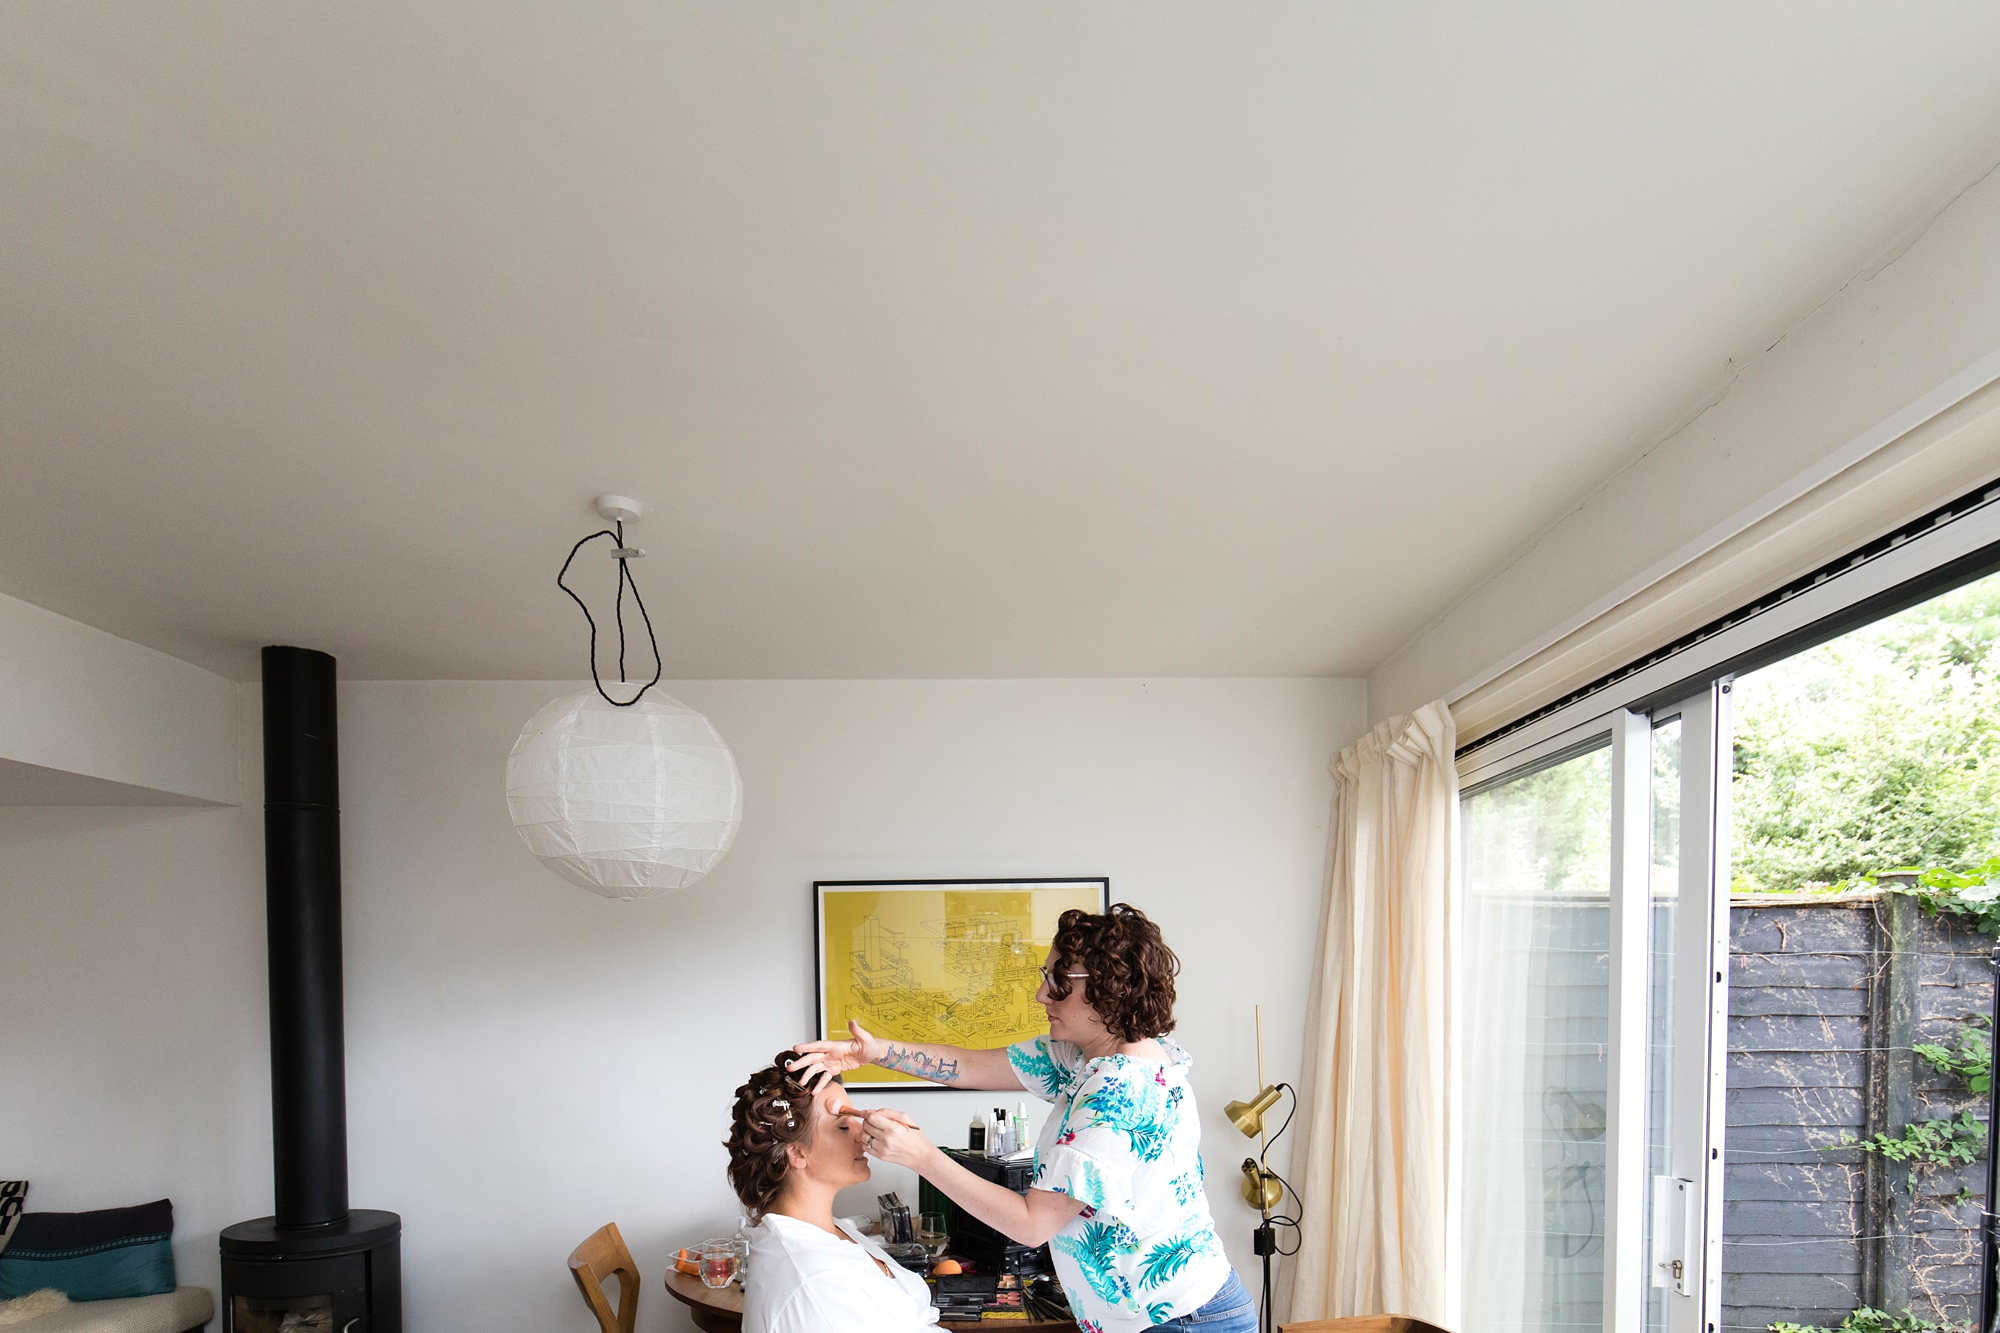 bridal preparation photograph with negative space near ceiling London wedding